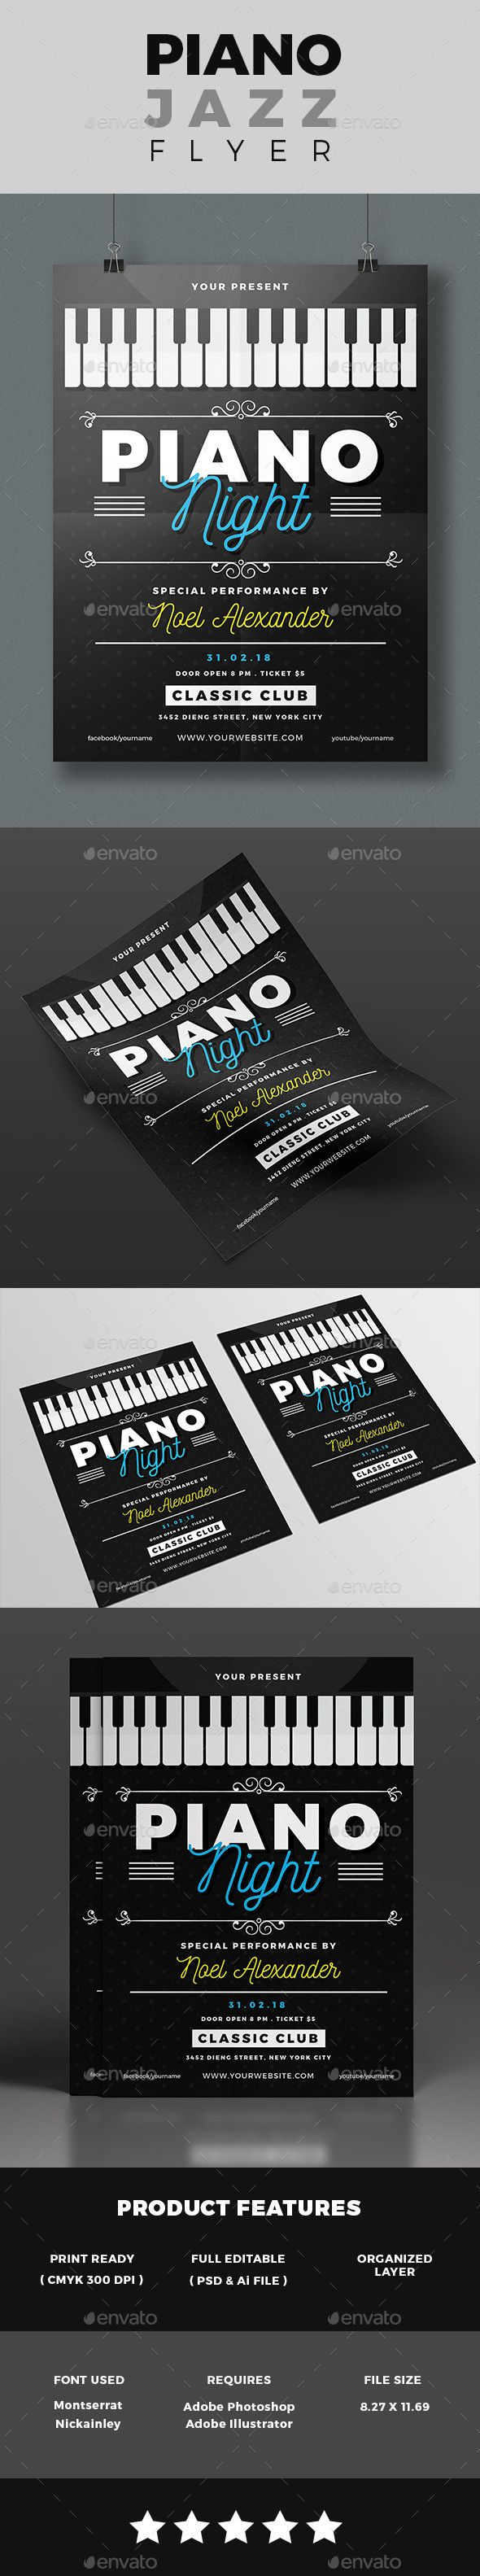 Piano Night Show Flyer By RizkiWildanii SPECIFICATIONSAi CS 6 3 Psd Files Dimensions 827x1169 In Size With Bleeds A4 Resolution 300 Dpi